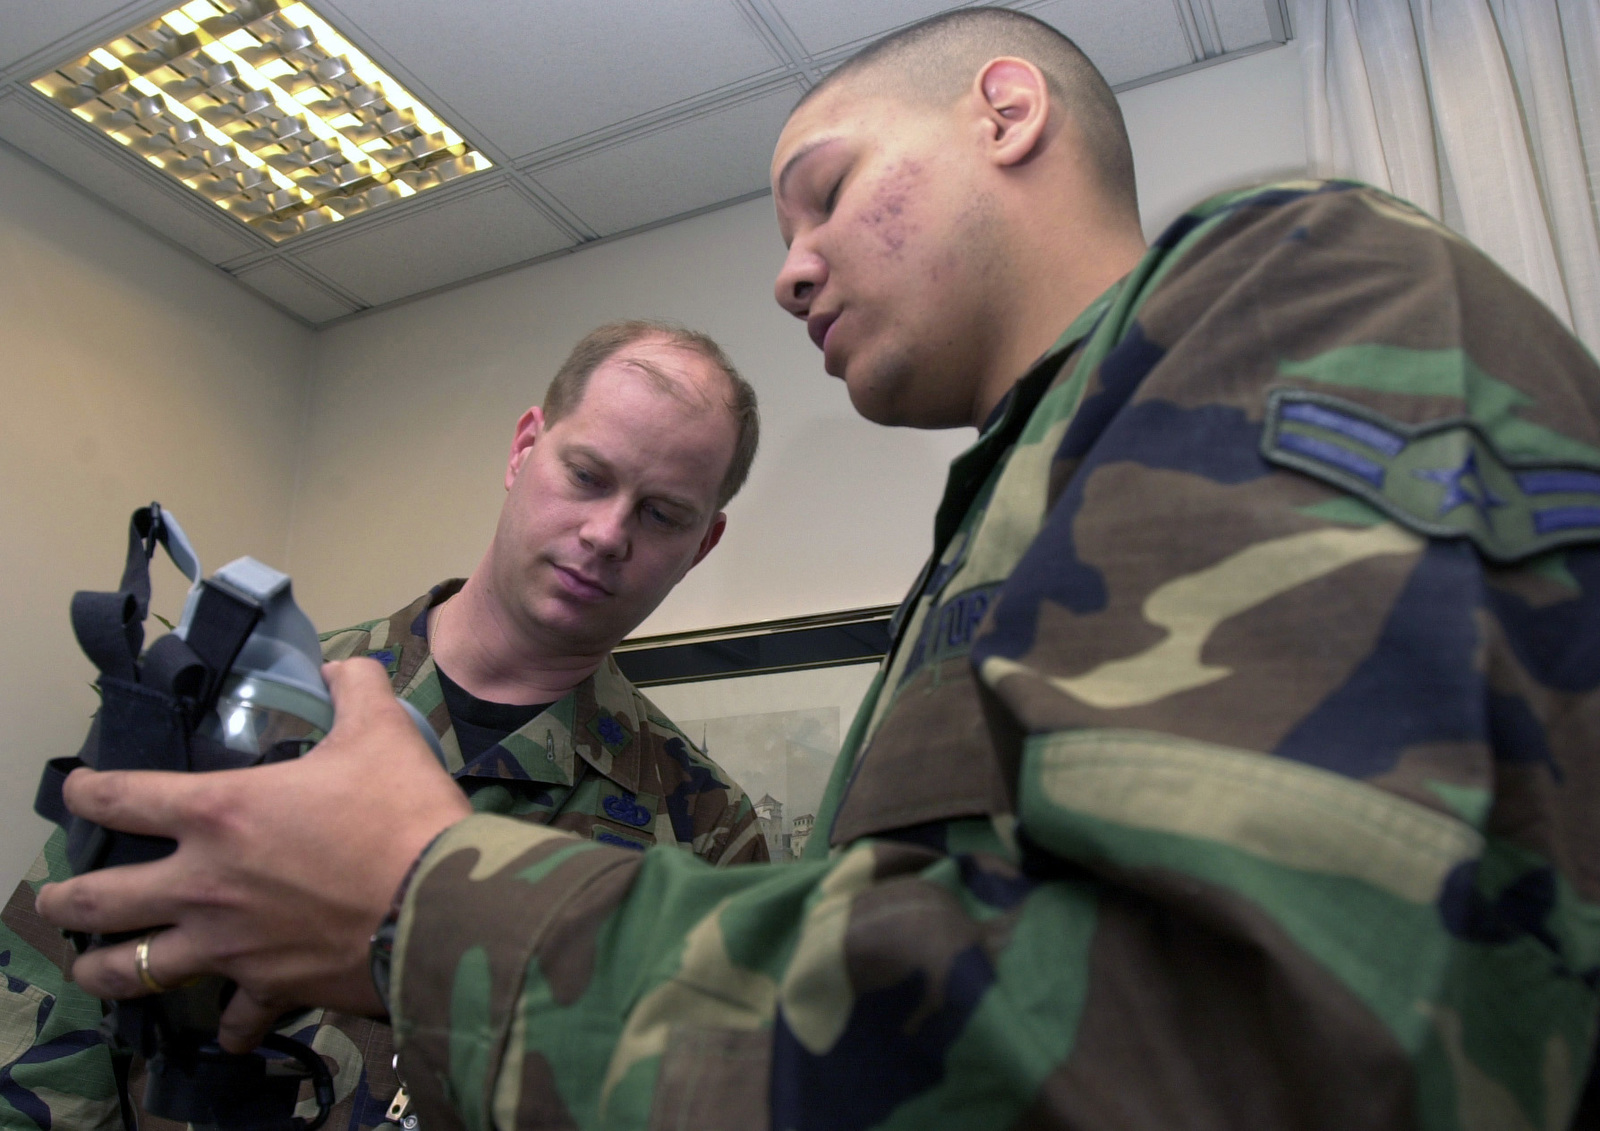 US Air Force (USAF) Lieutenant Colonel (LCOL) John Foden, left, Logistics Readiness Center (LRC) CHIEF, for the 16th Air Expeditionary Task Force (AETF), receives guidance on how to wear his gas mask from SENIOR AIRMAN (SRA) Drew Hall, a Readiness Trainer, with the 31st Civil Engineer Squadron (CES)